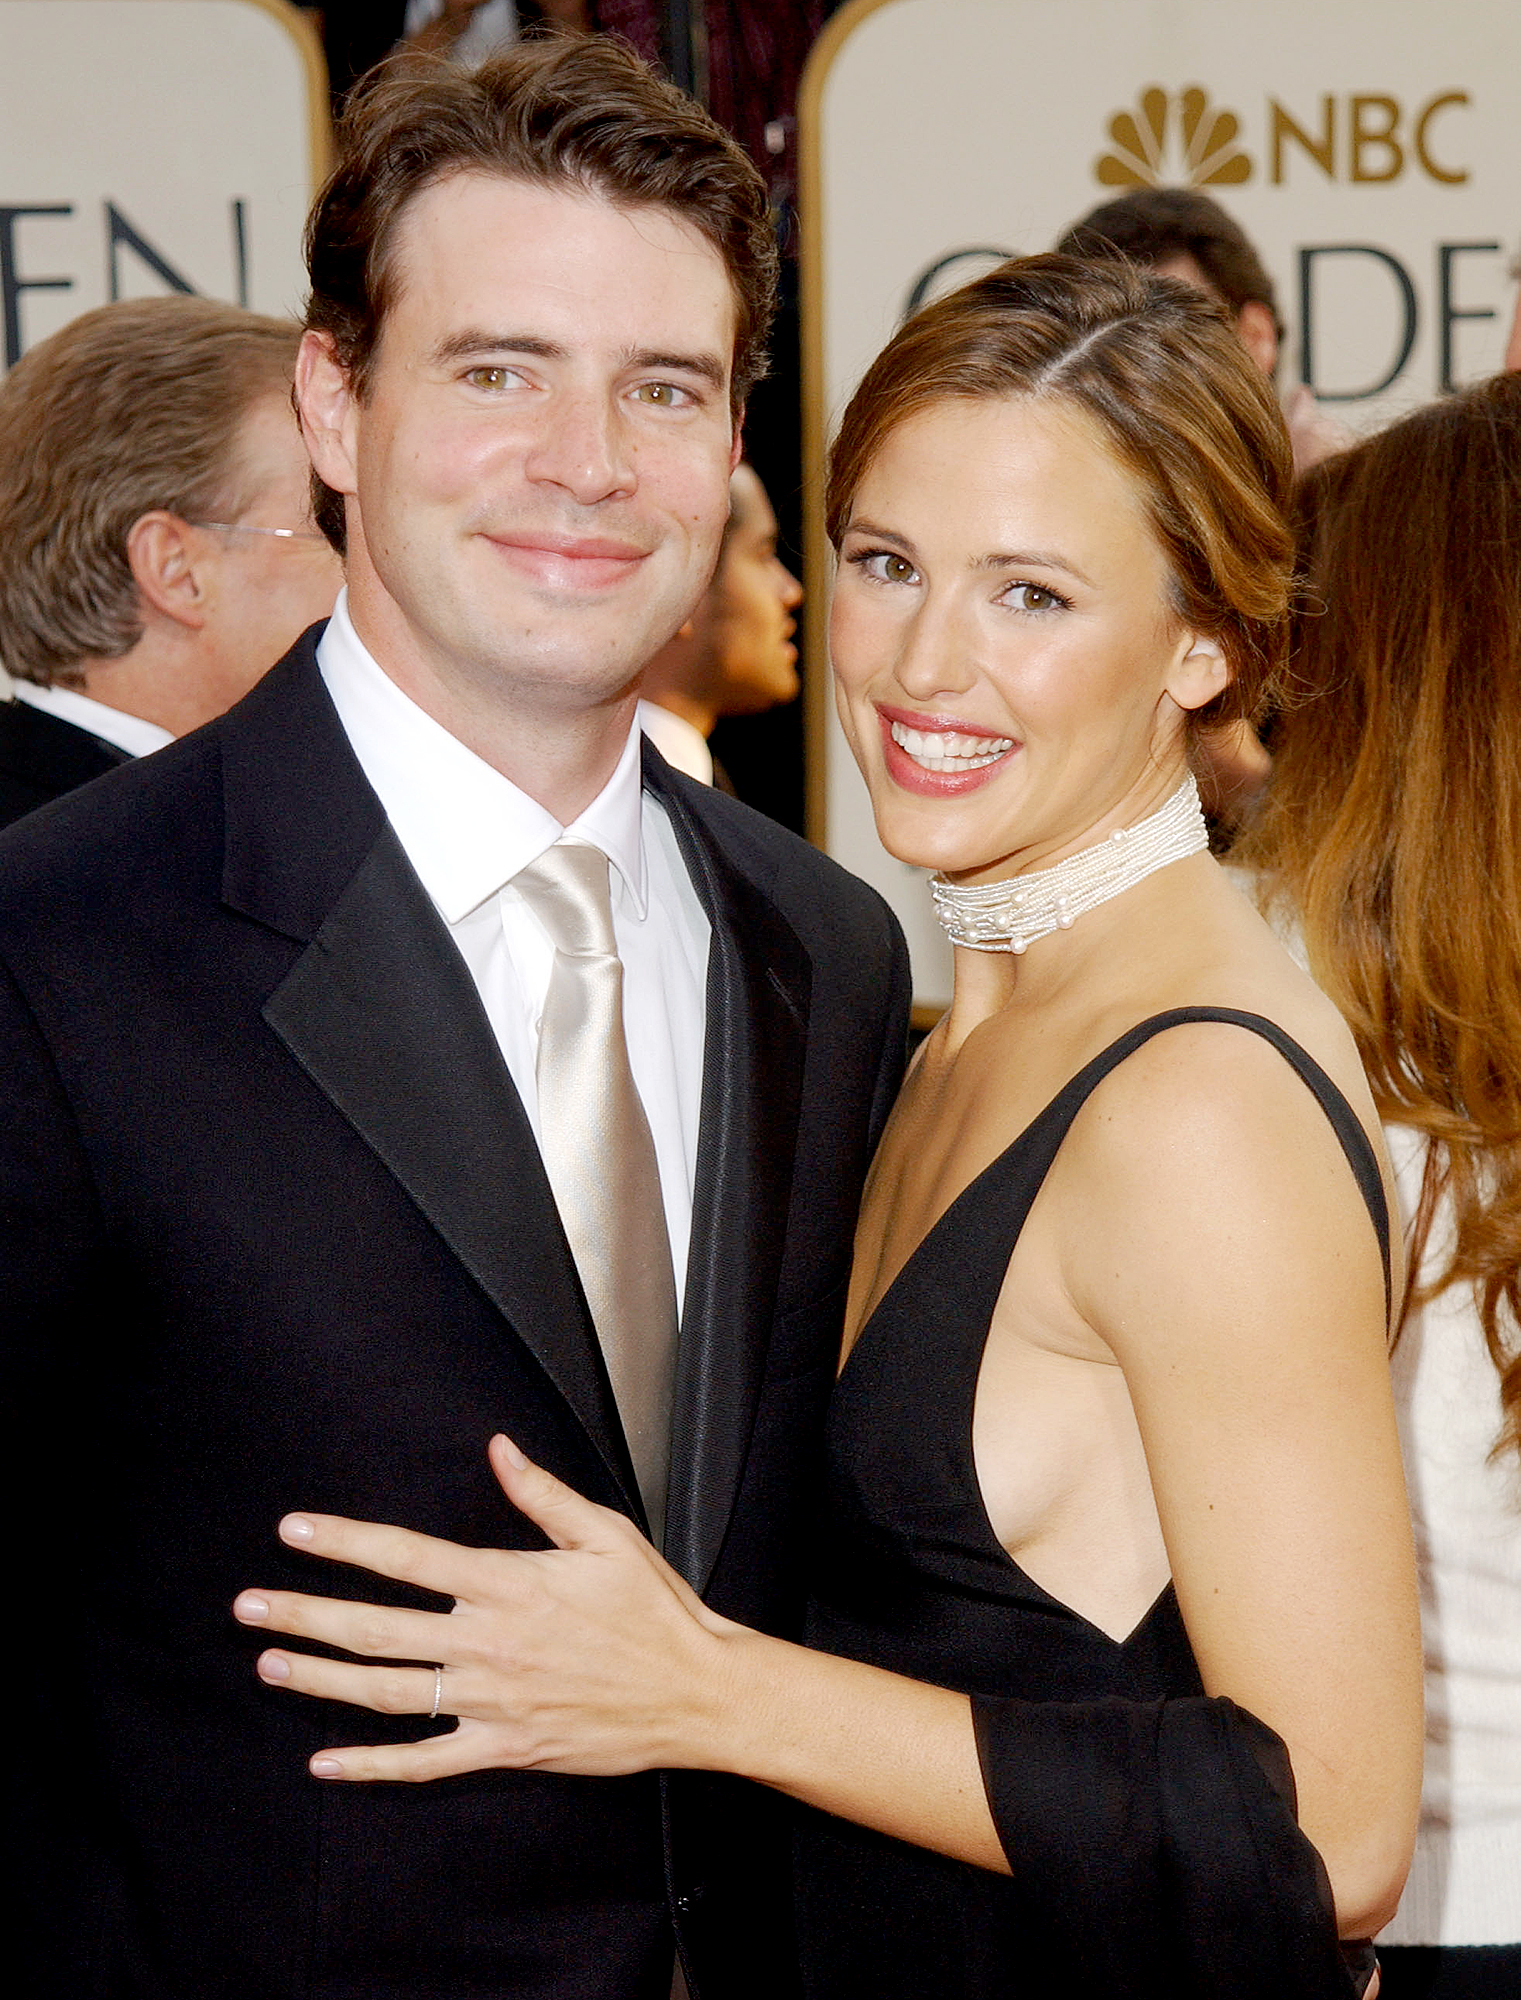 Scott-Foley-and-Jennifer-Garner - BEVERLY HILLS, CA – JANUARY 19: Actors Scott Foley and wife Jennifer Garner attend the 60th Annual Golden Globe Awards at the Beverly Hilton Hotel on January 19, 2003 in Beverly Hills, California. (Photo by Jon Kopaloff/Getty Images)